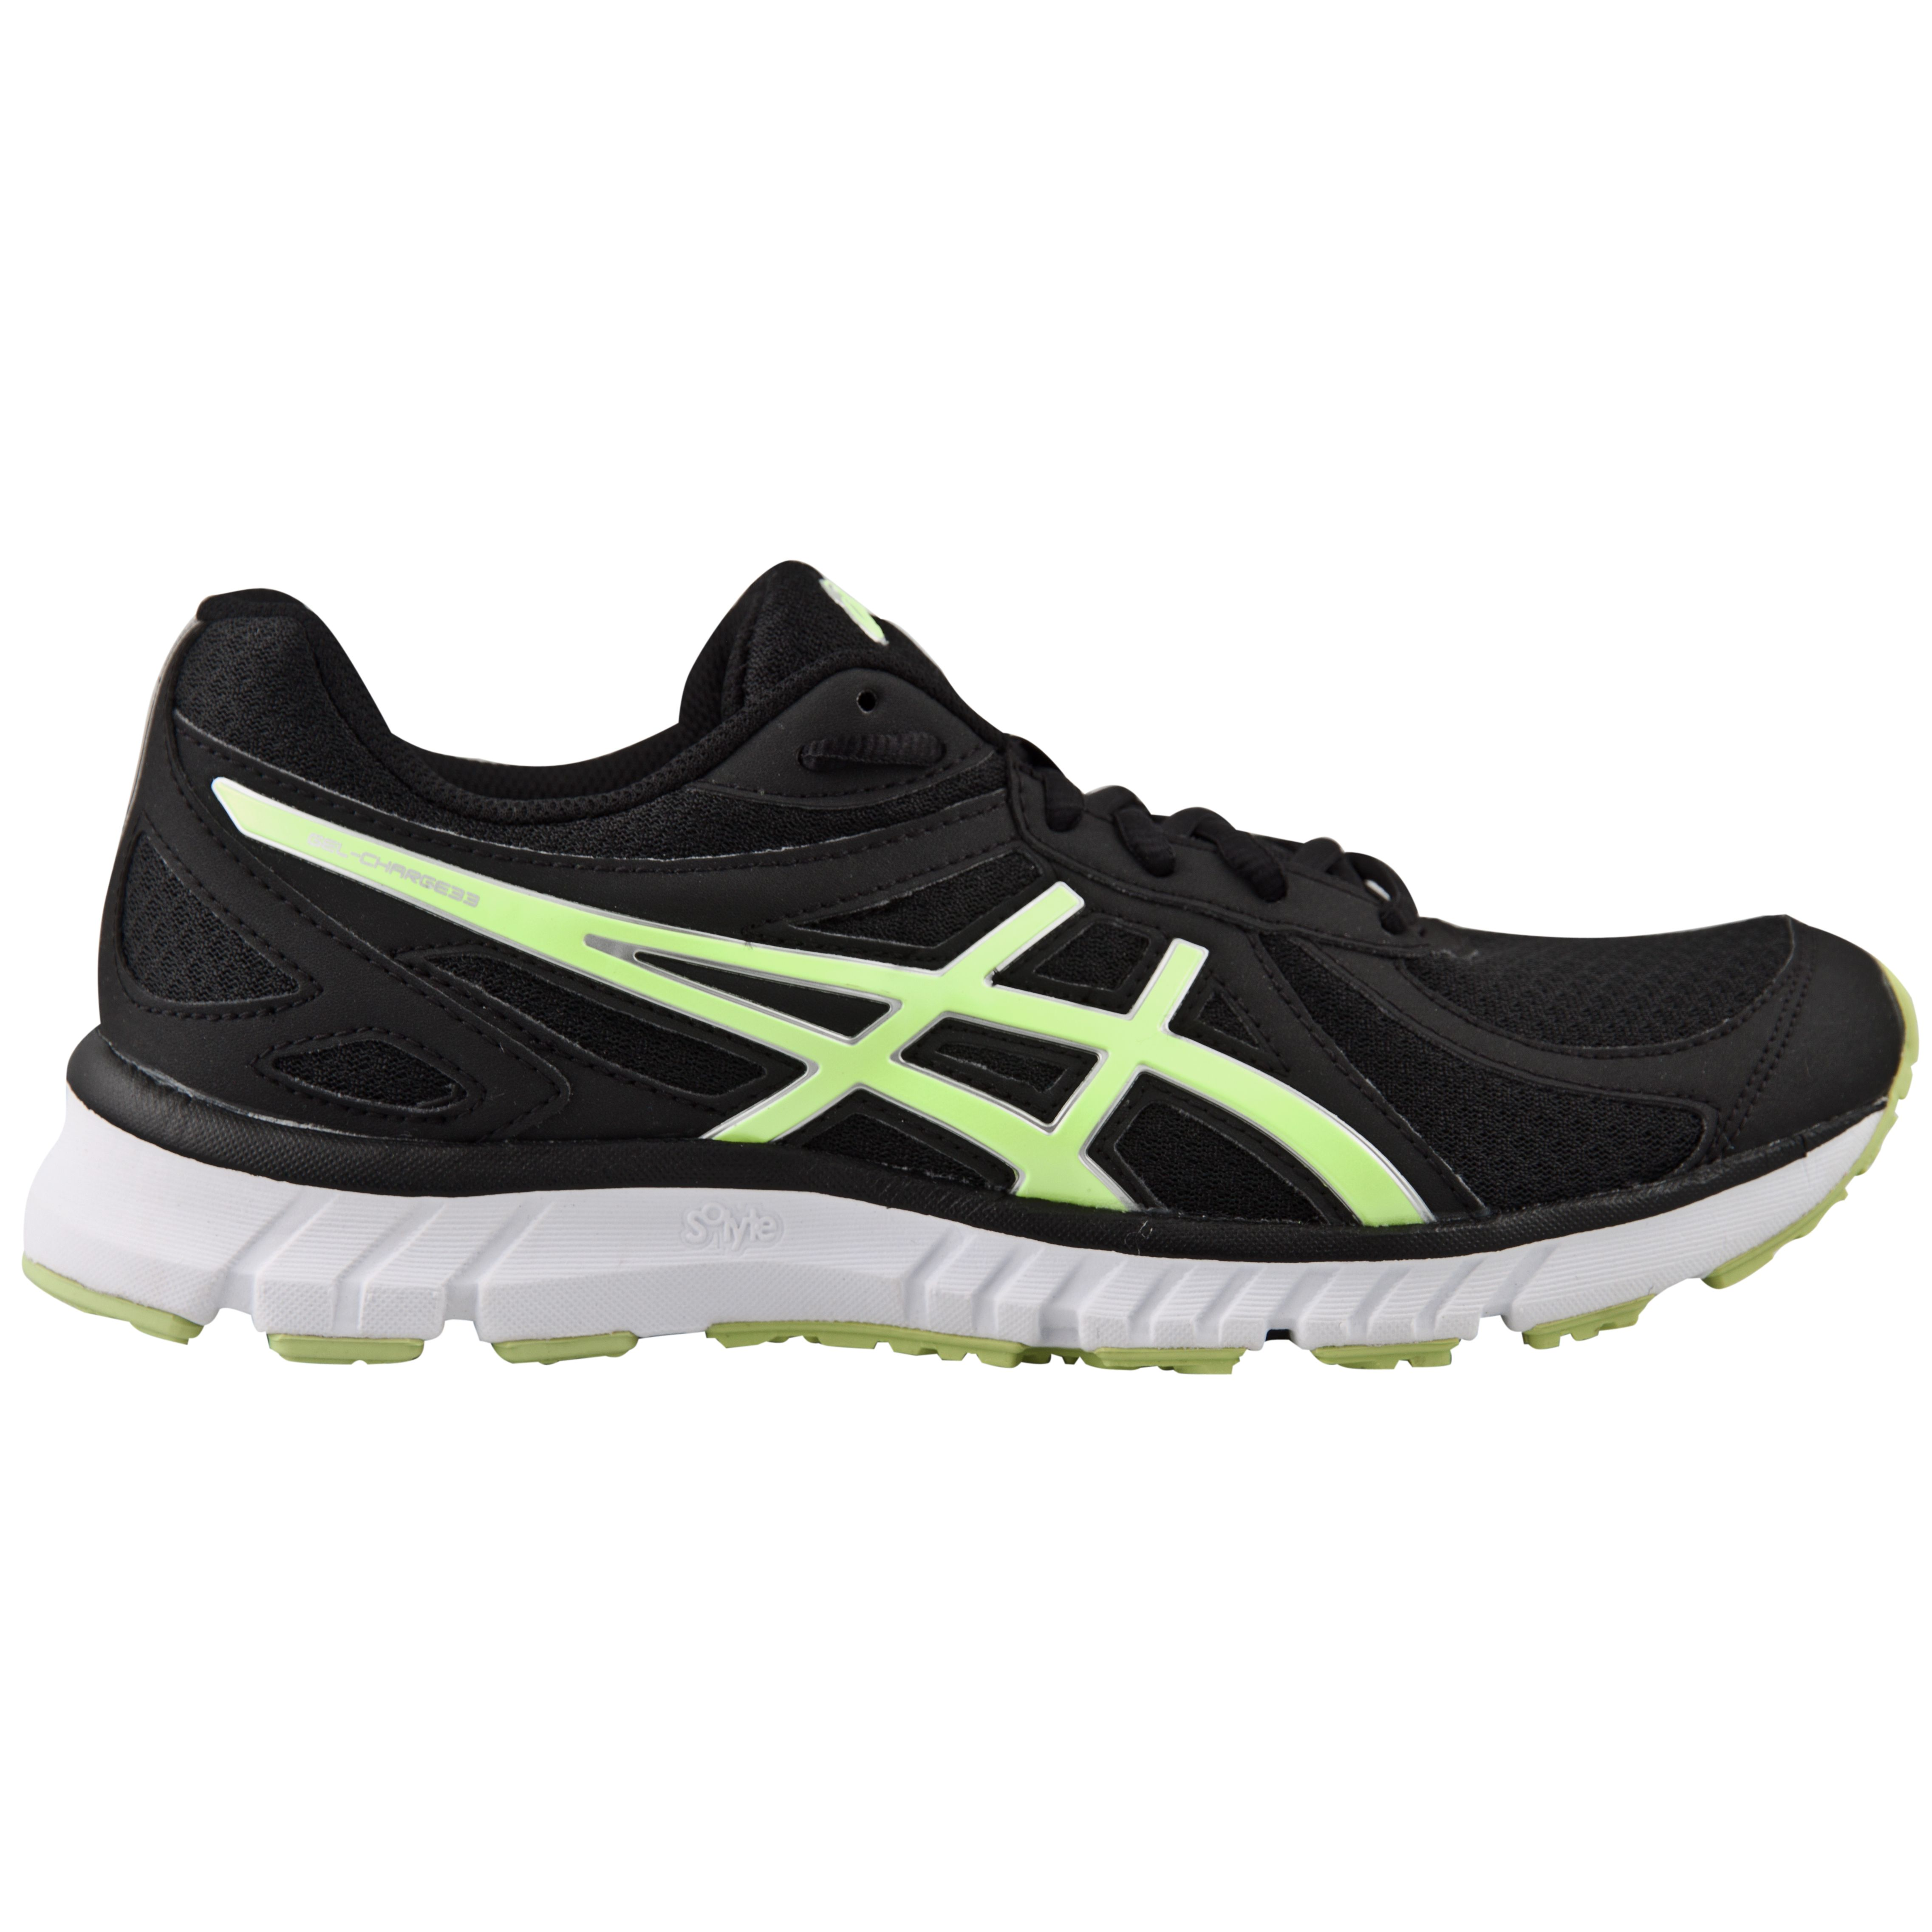 da7fbdc27 The Asics Gel-Charge 33 Men's Running Shoe. In Black and Yellow, this